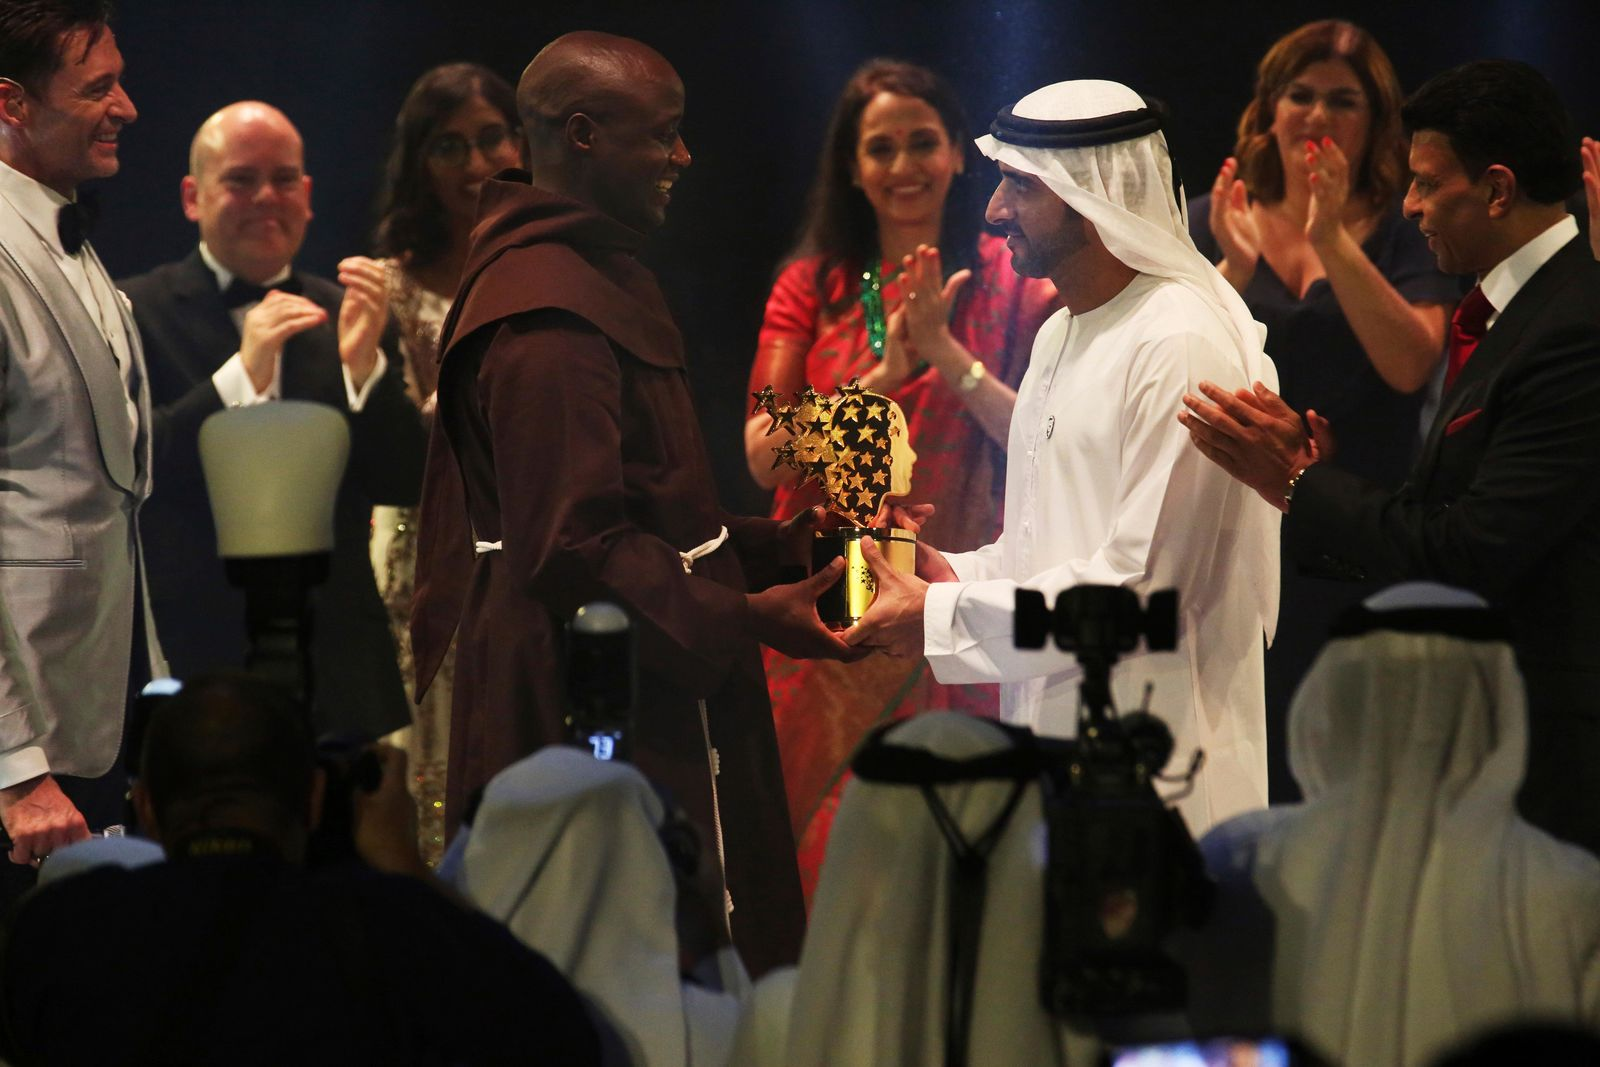 Kenyan teacher Peter Tabichi, center left, receives a statue from Dubai crown prince Sheikh Hamdan bin Mohammed Al Maktoum, center right, after winning the $1 million Global Teacher Prize in Dubai, United Arab Emirates, Sunday, March 24, 2019. (AP Photo/Jon Gambrell)